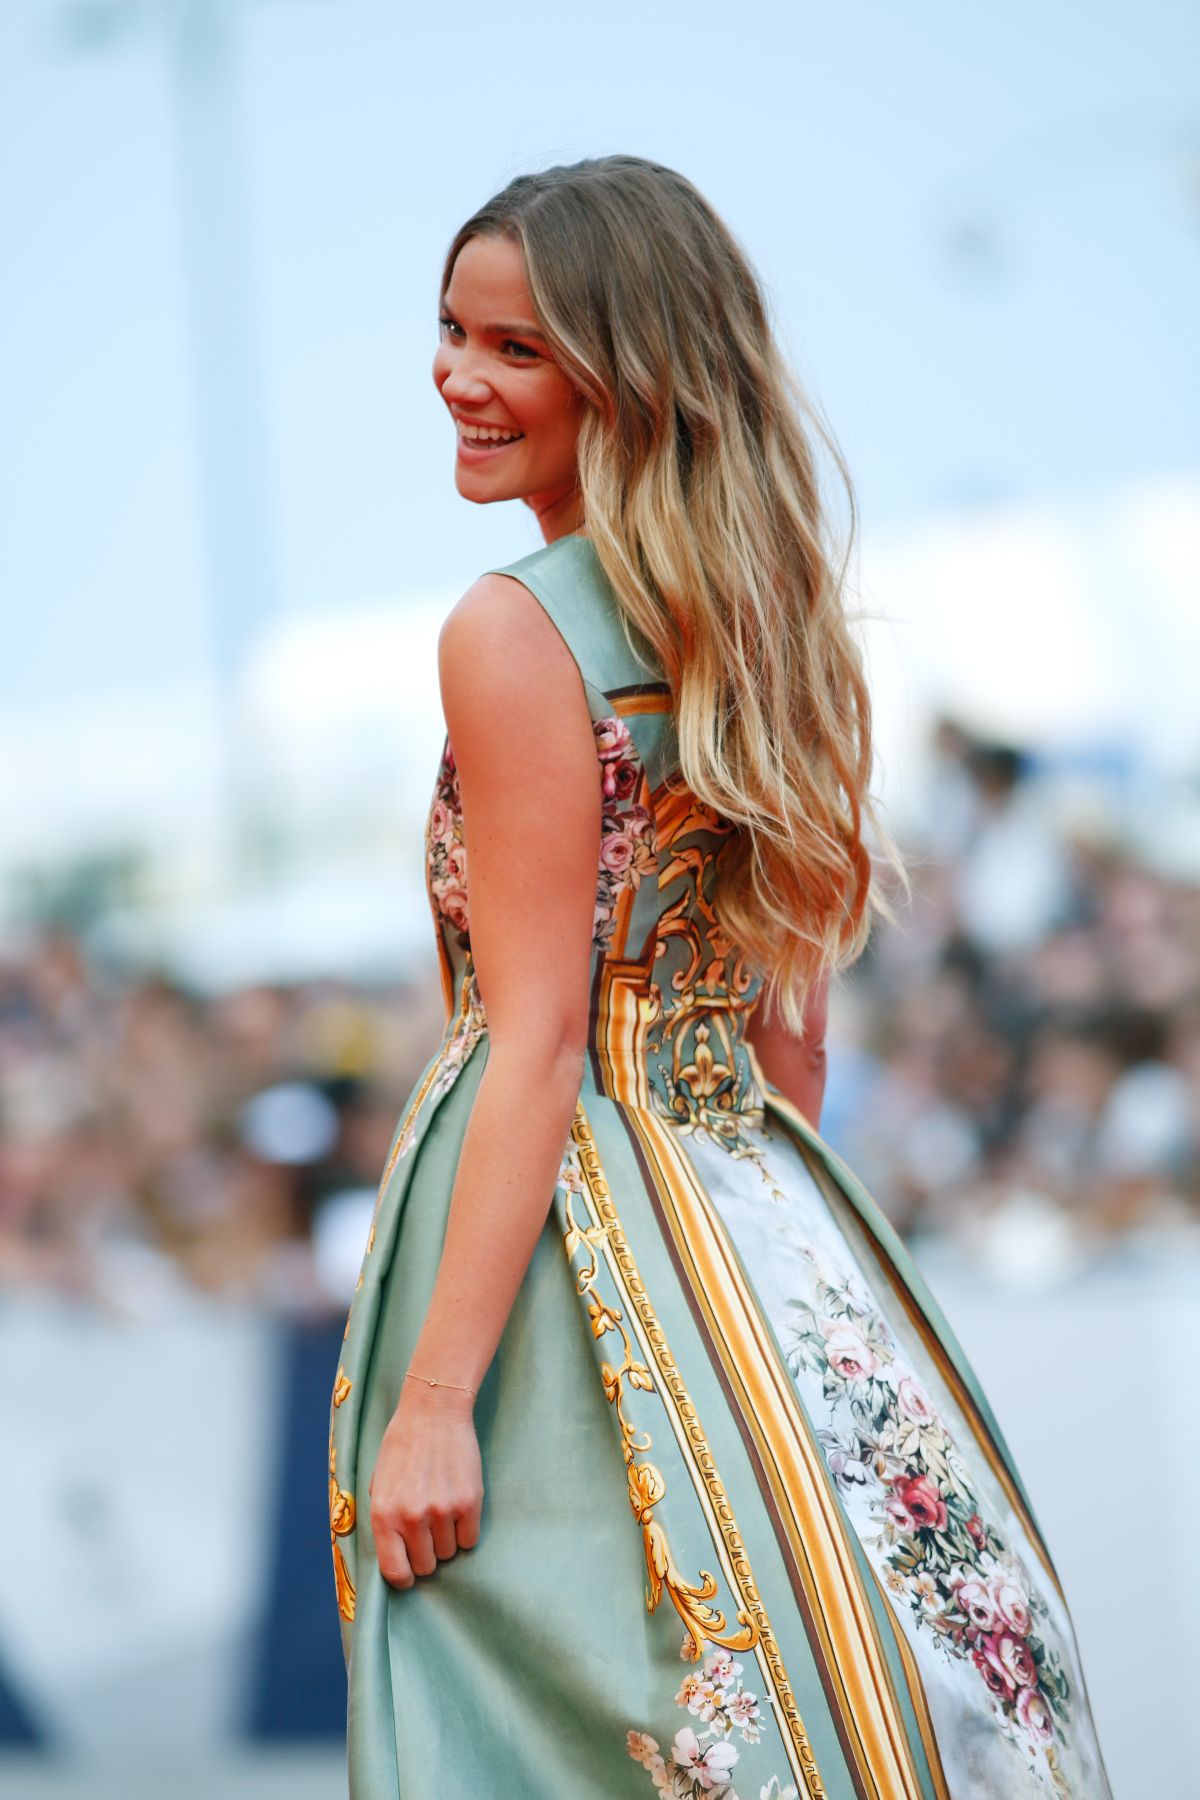 fiammetta-cicogna-at-everest-premiere-and-72nd-venice-film-festival-opening-ceremony_13